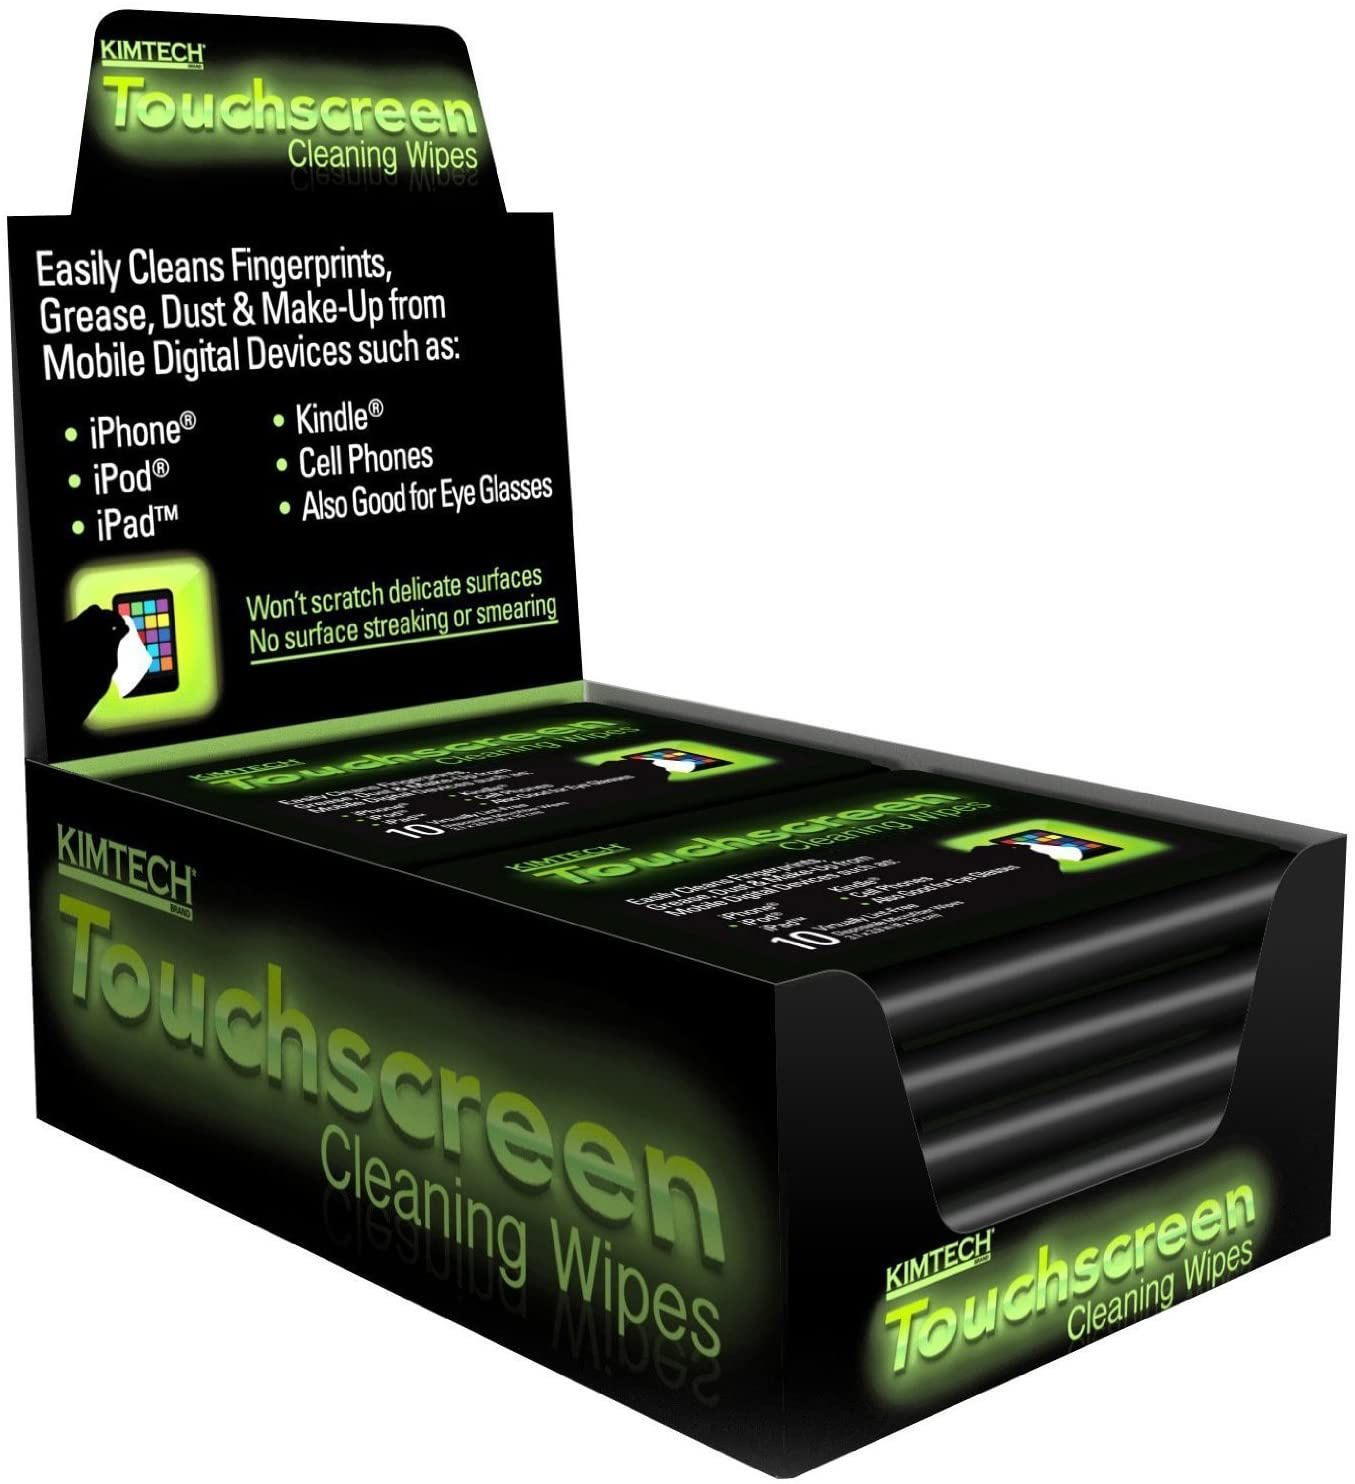 Kimtech Touchscreen Cleaning Wipes, 10 Packs of 10 (Total of 100 Wipes), 3.1 x 3.9 Inch